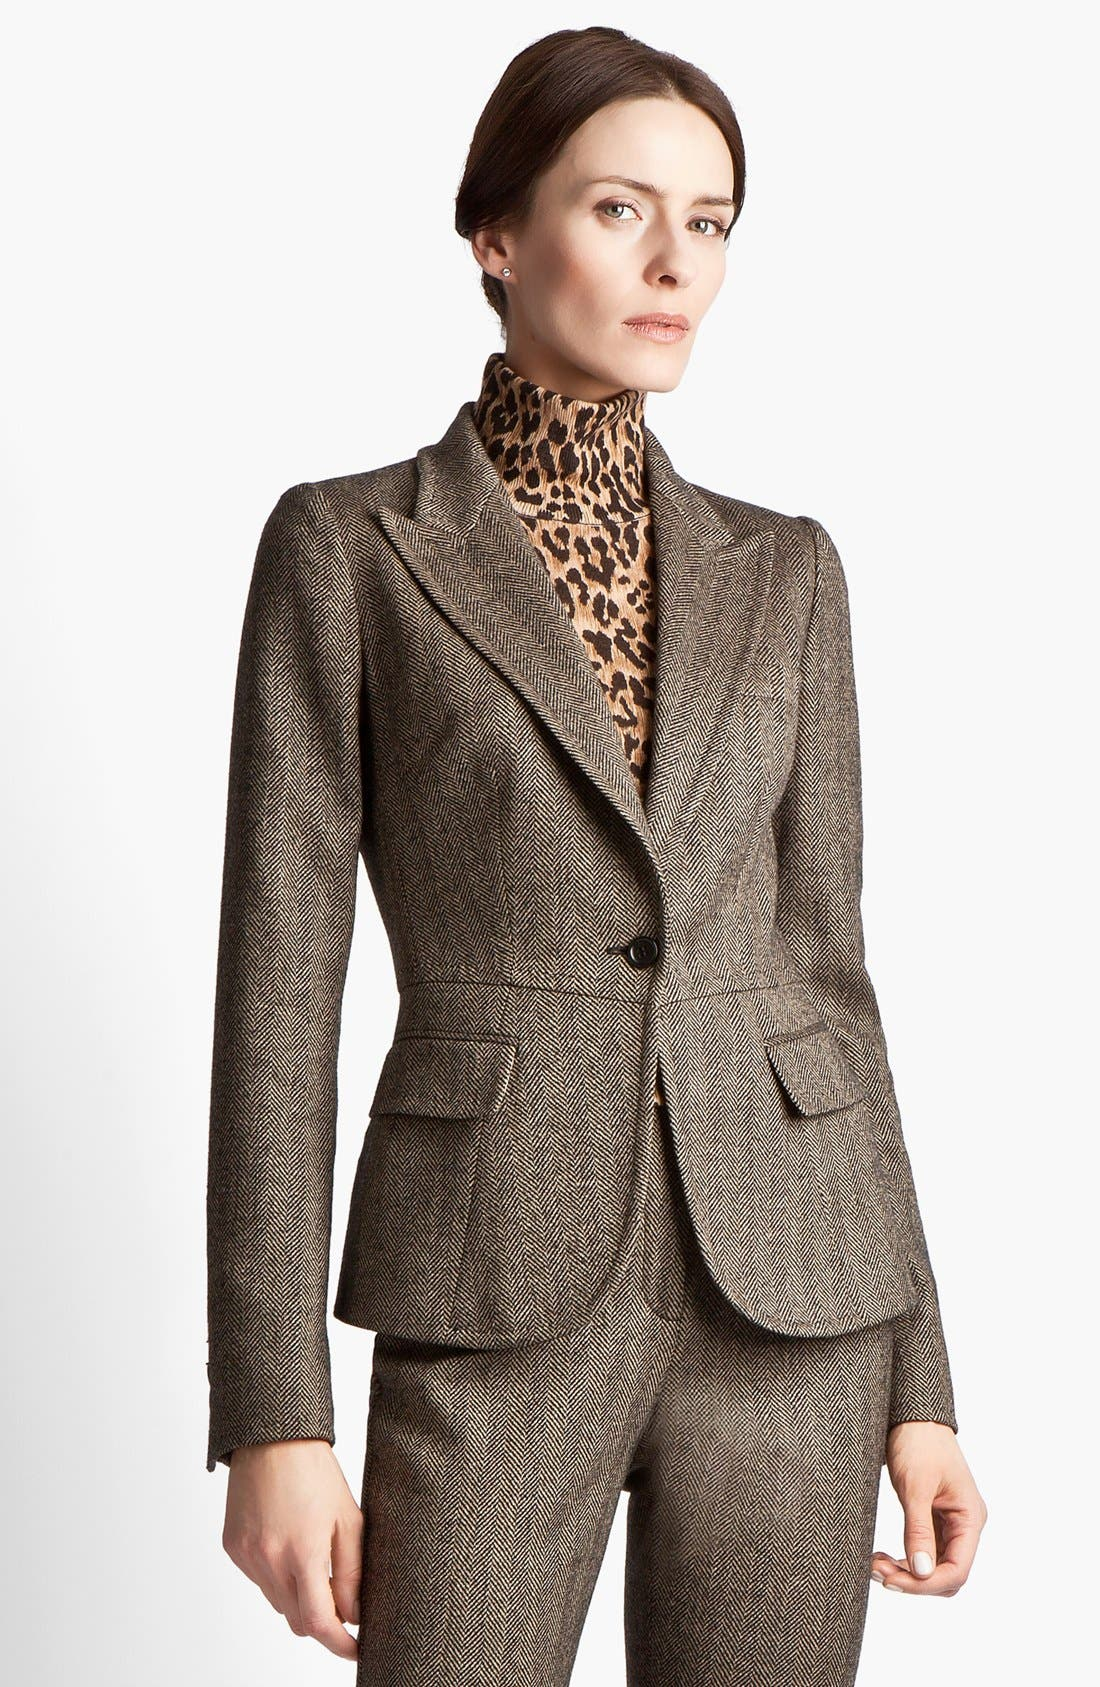 Main Image - Dolce&Gabbana Stretch Herringbone Jacket